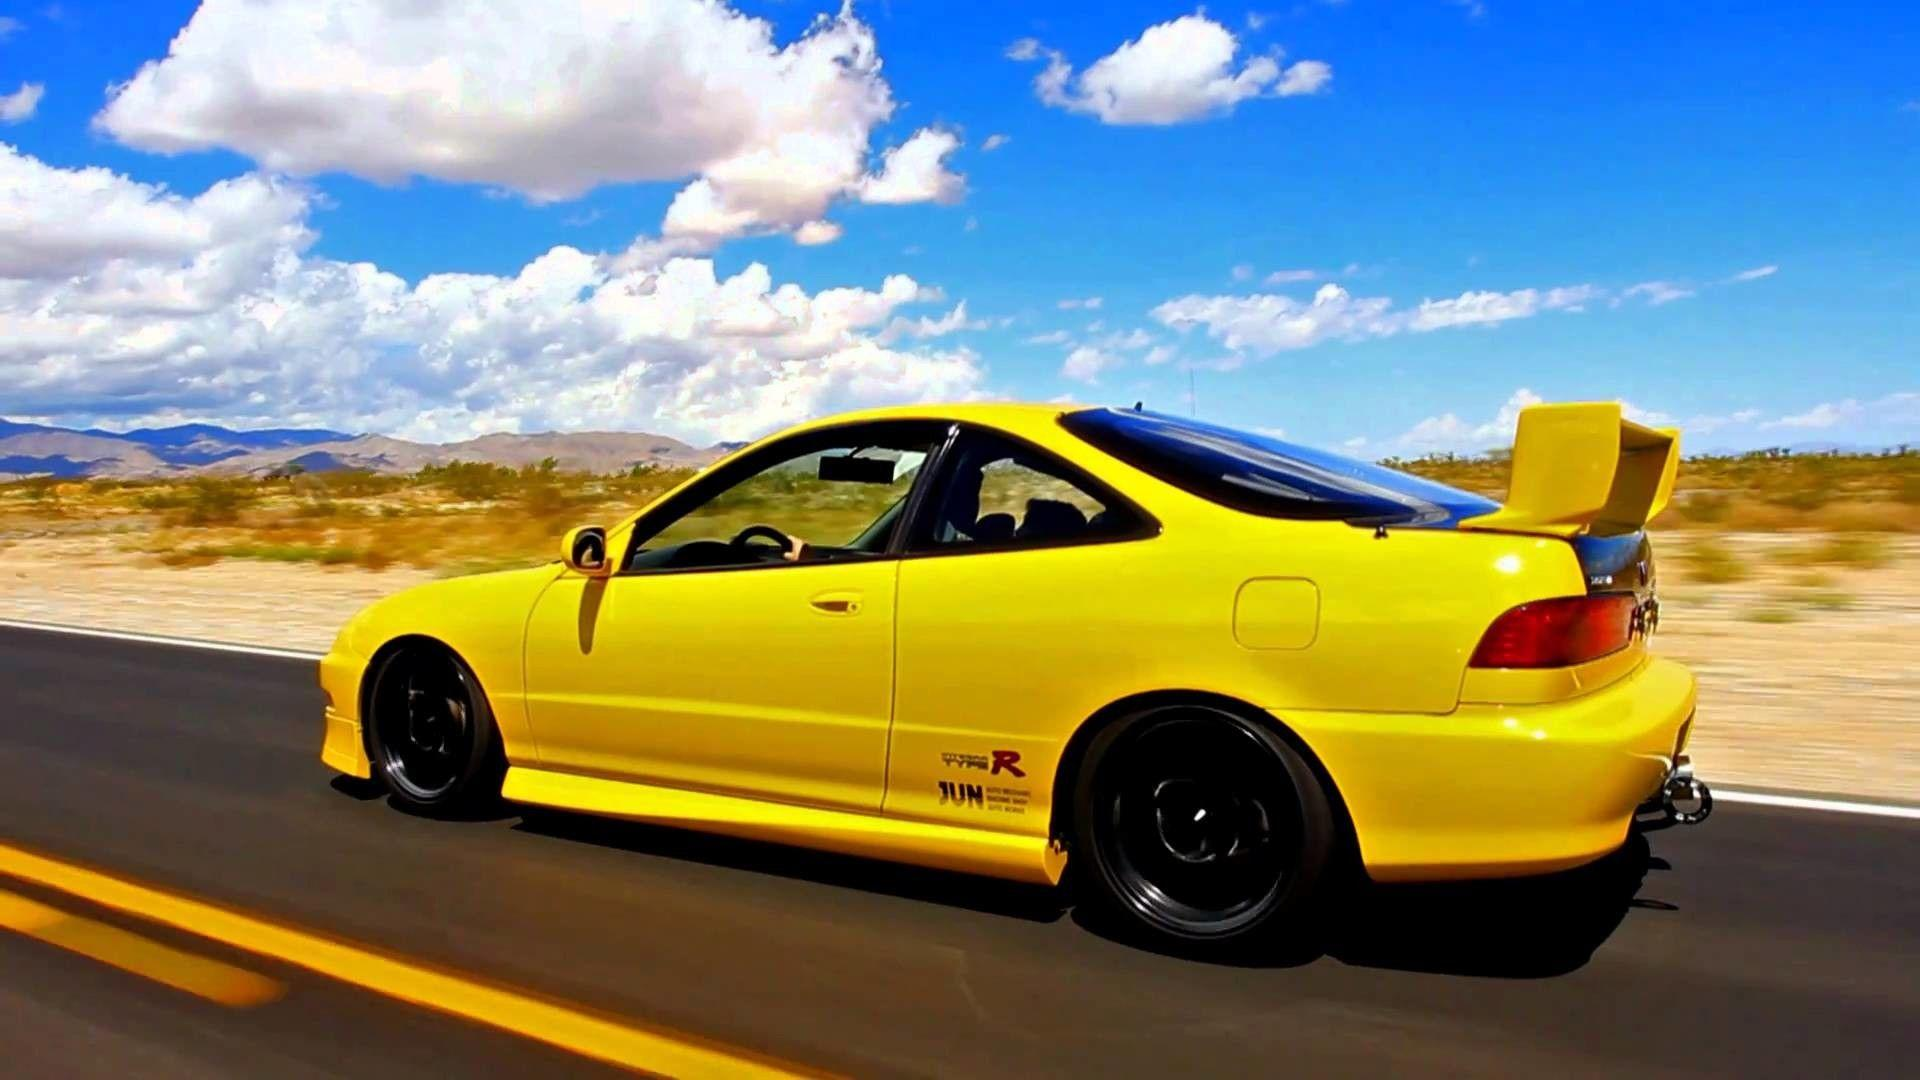 Honda Integra Type R Wallpapers ·①